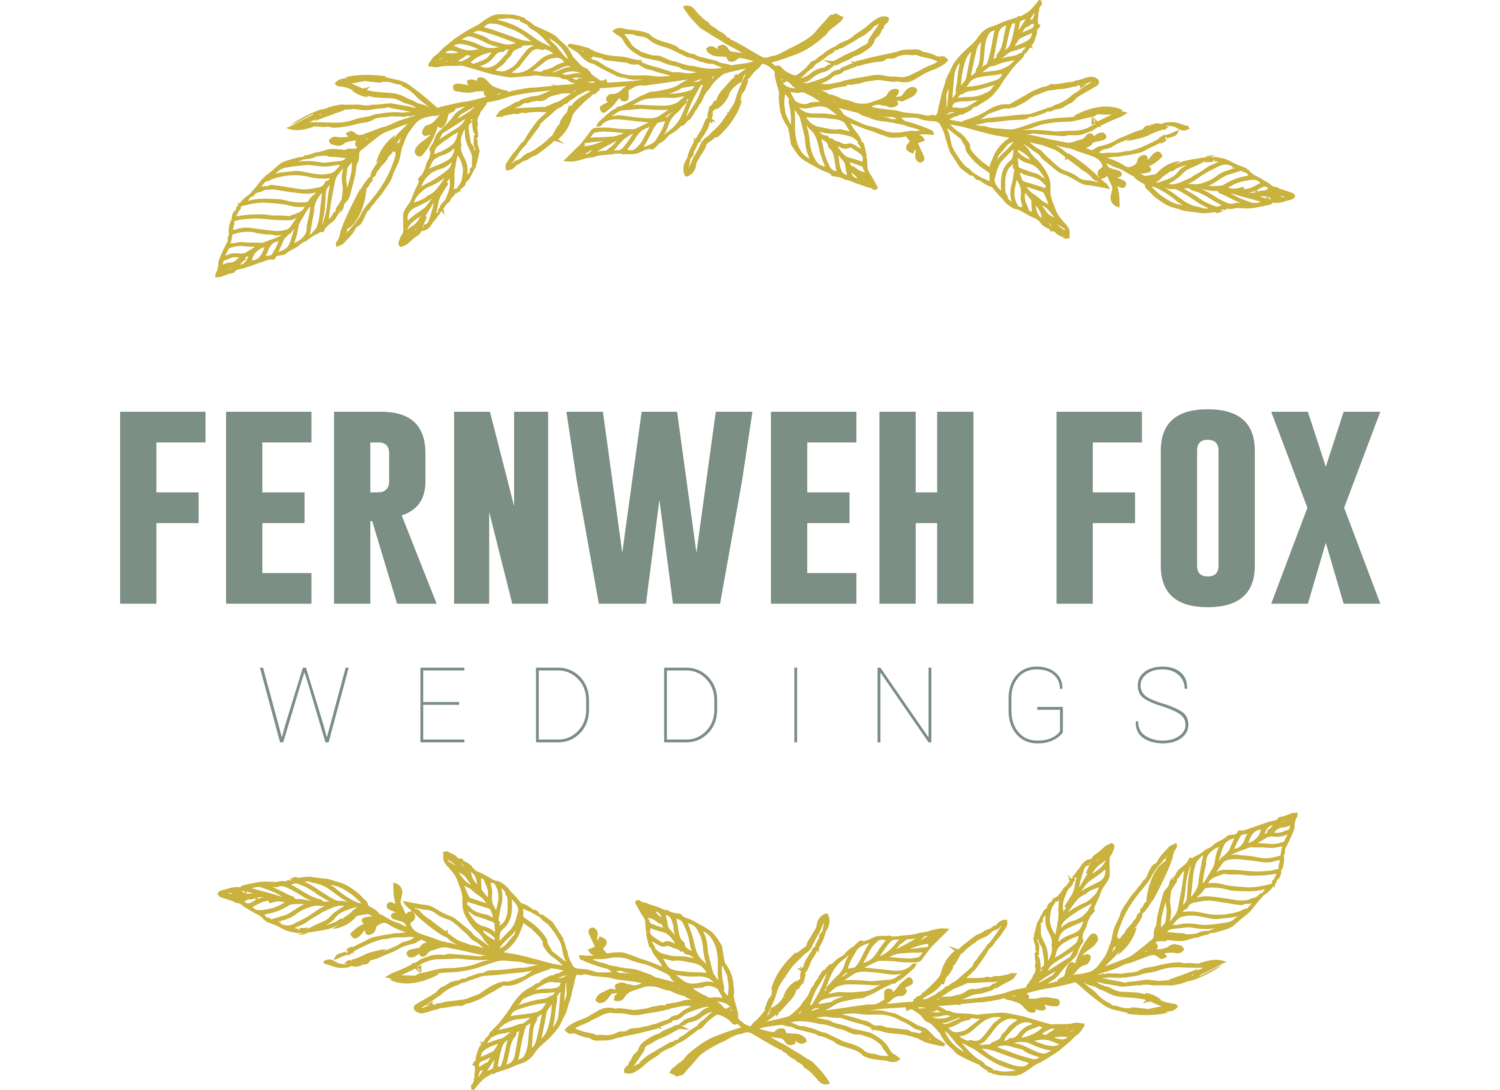 Fernweh Fox Weddings